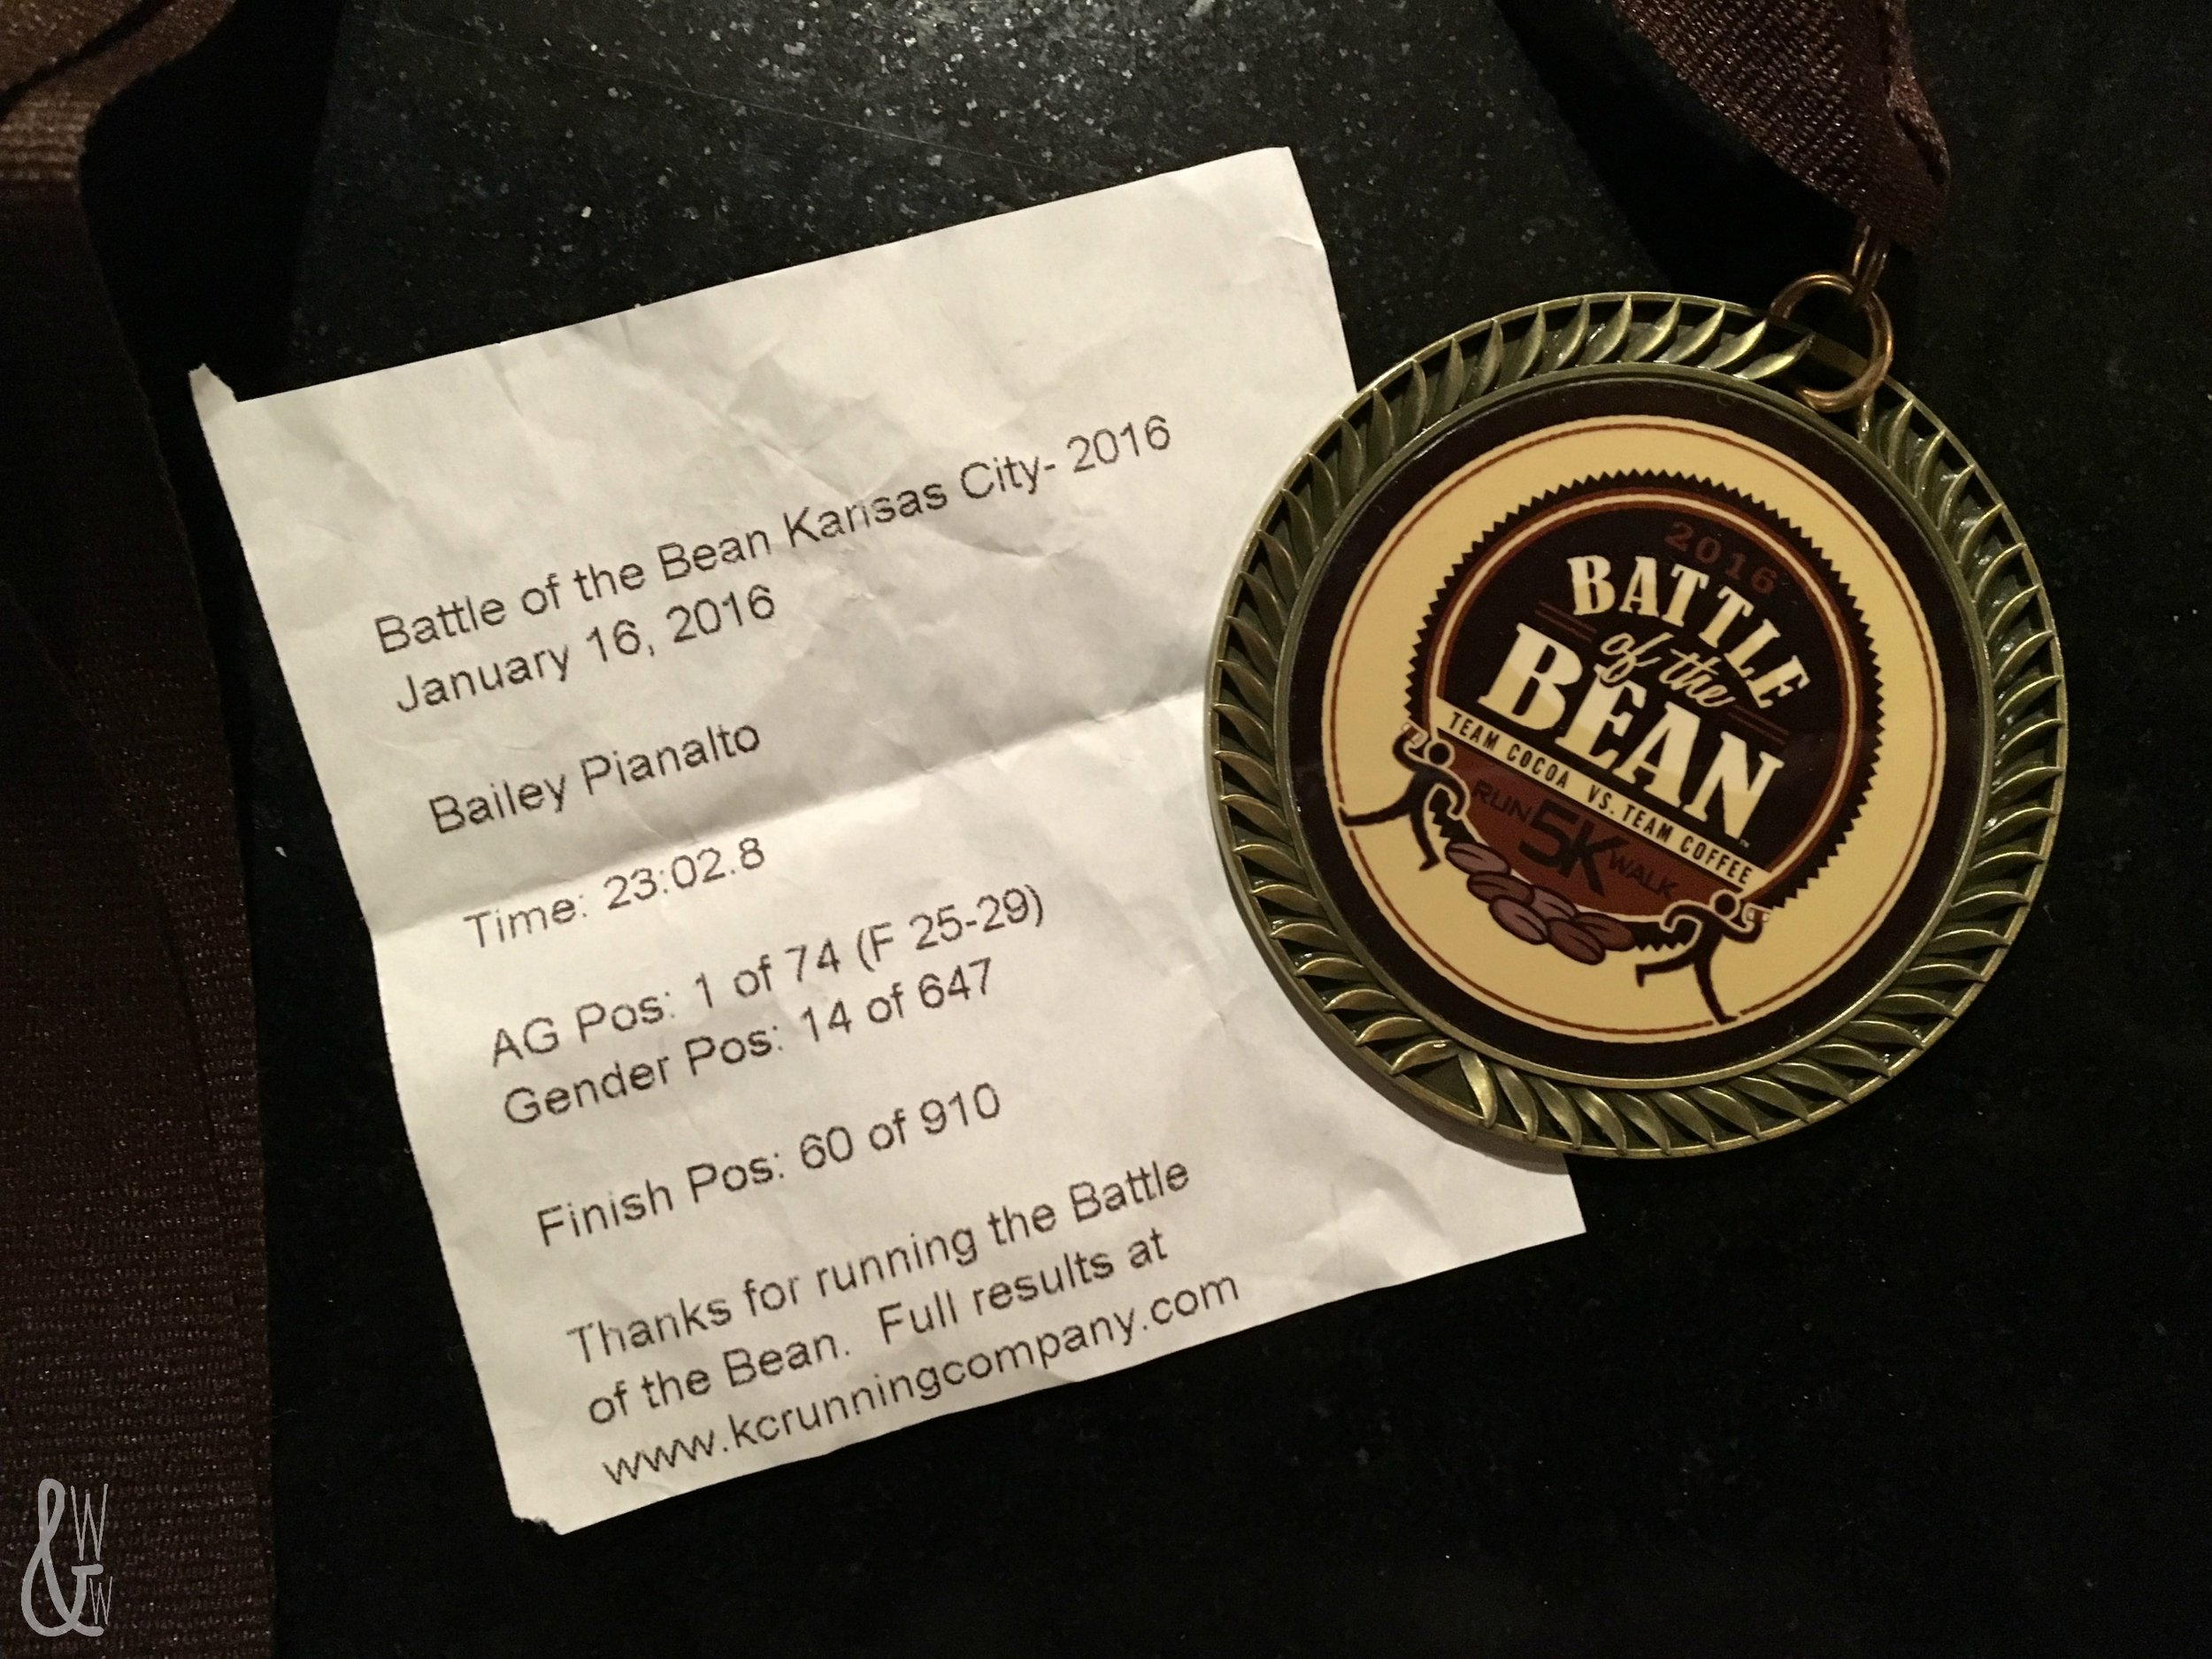 Race results from the Battle of the Bean